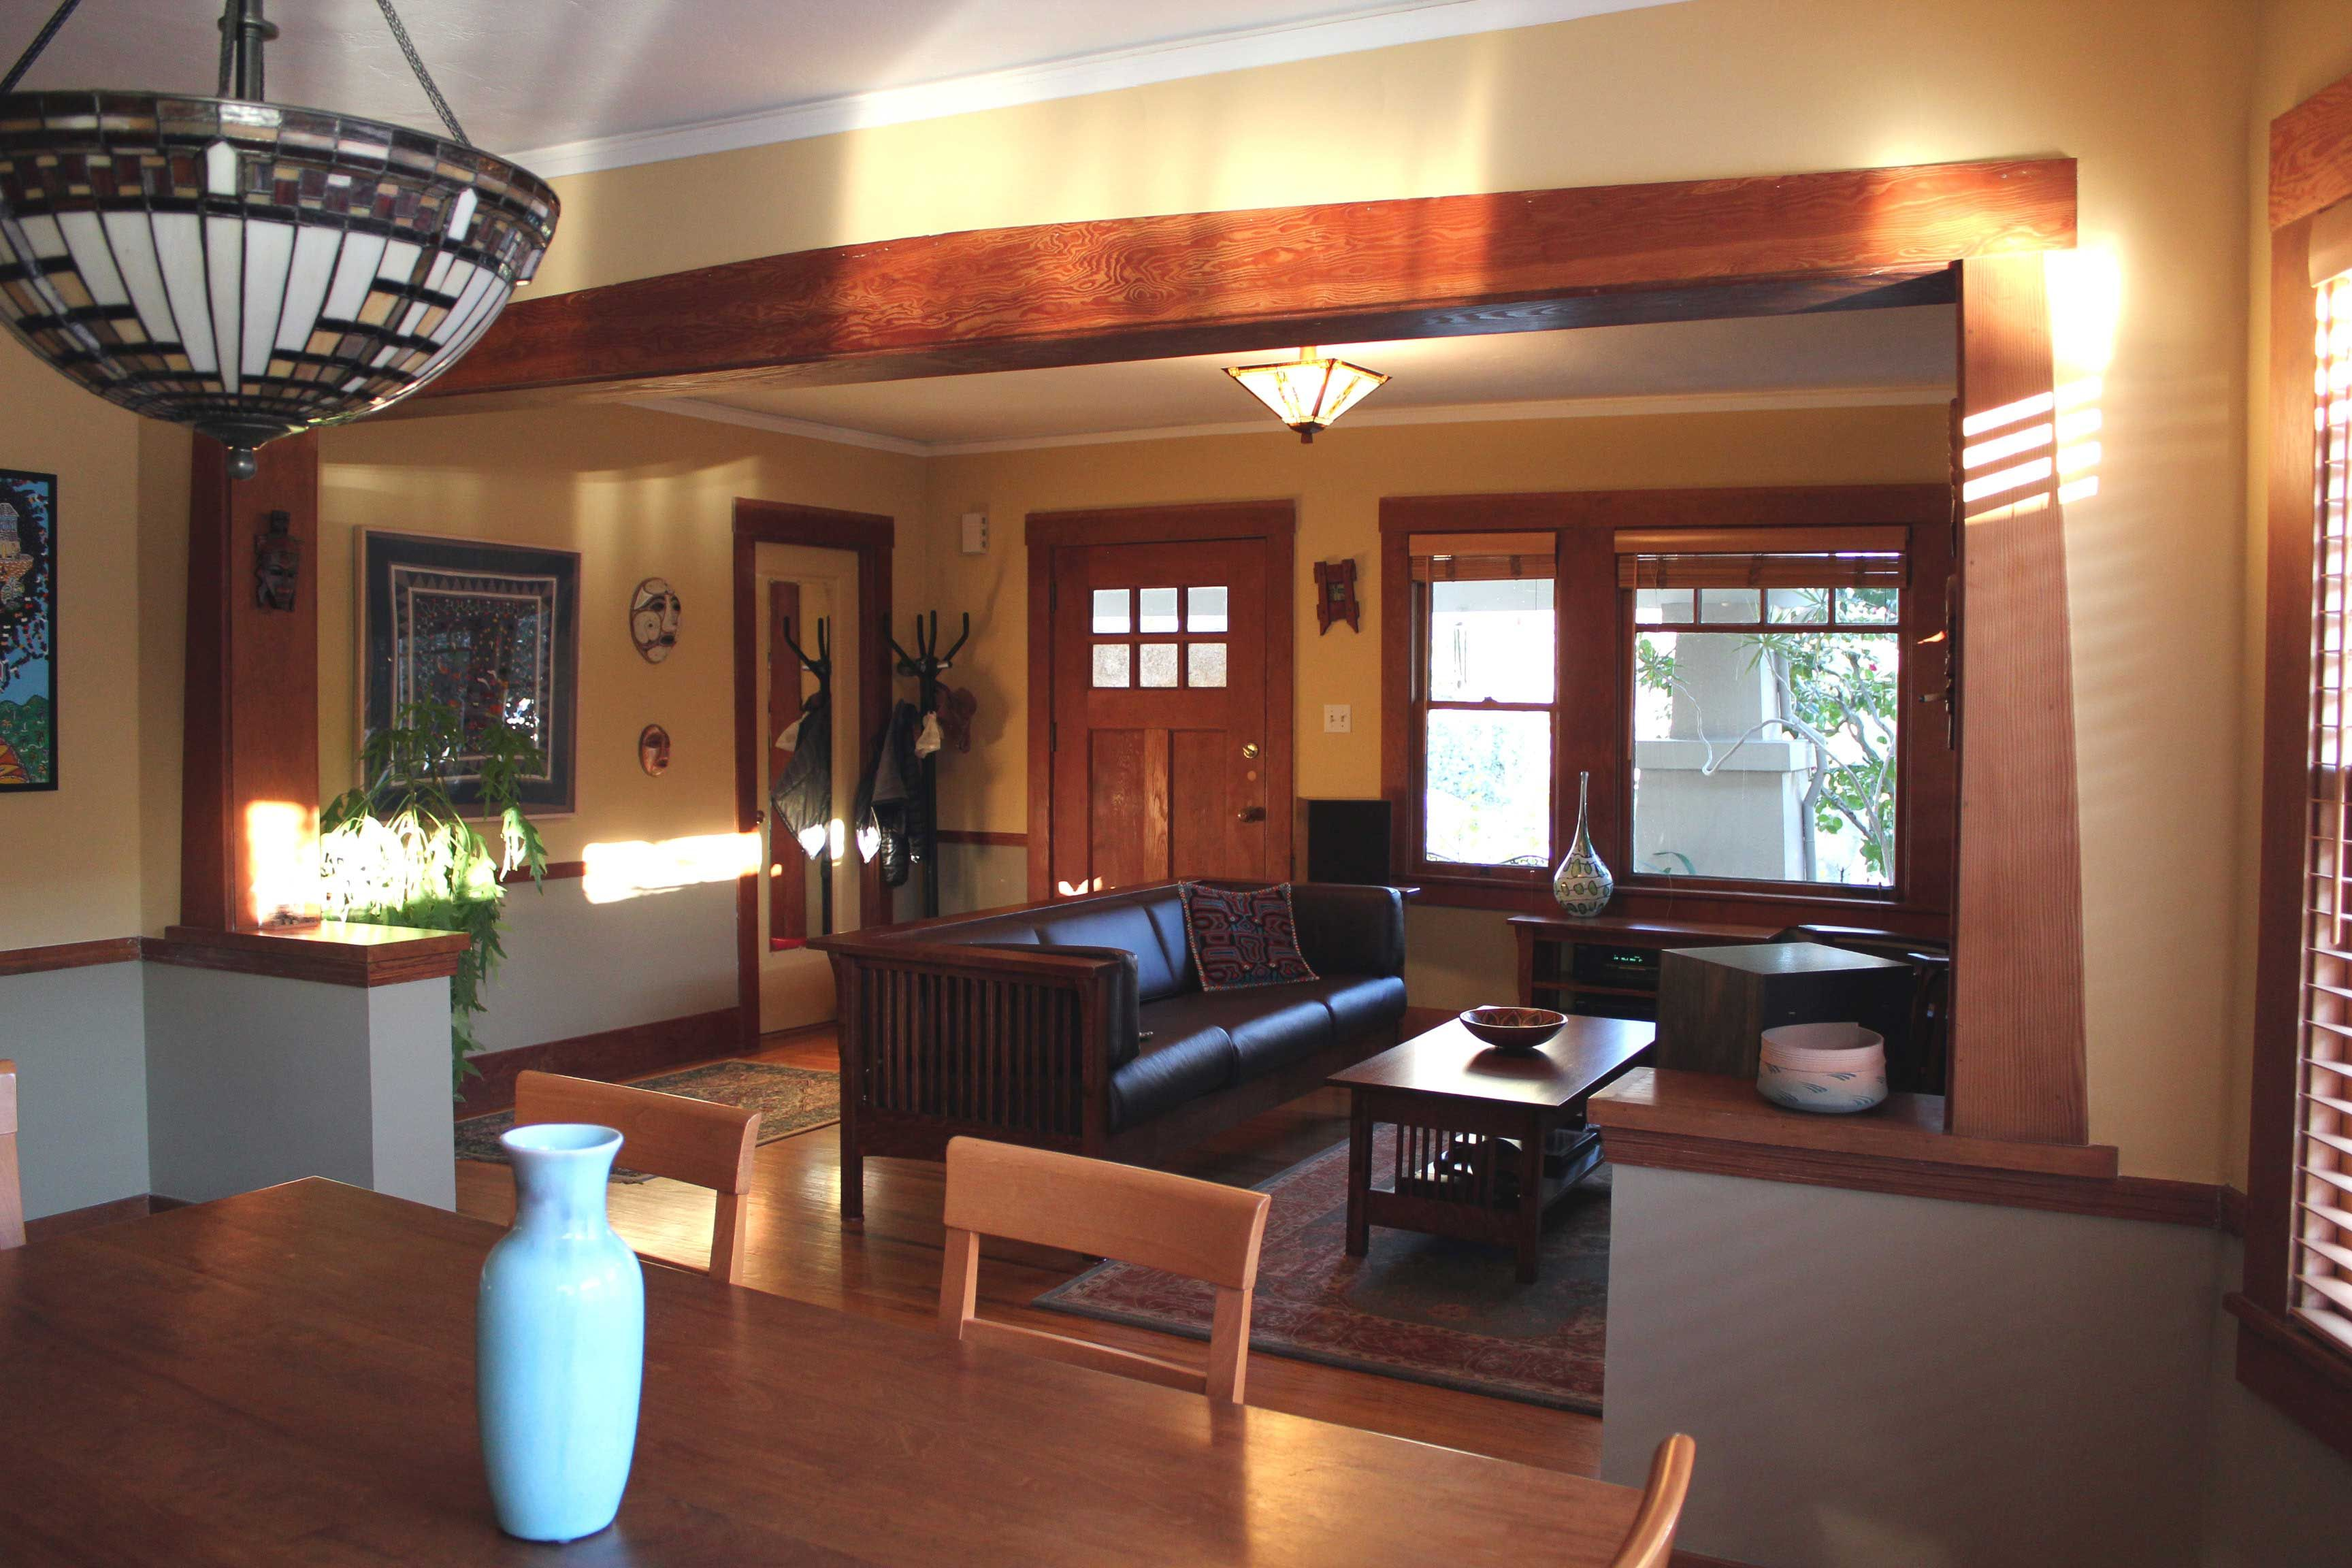 Craftsman Style Home Interiors Property bungalow style home, berkeley, ca decorating jobmp design